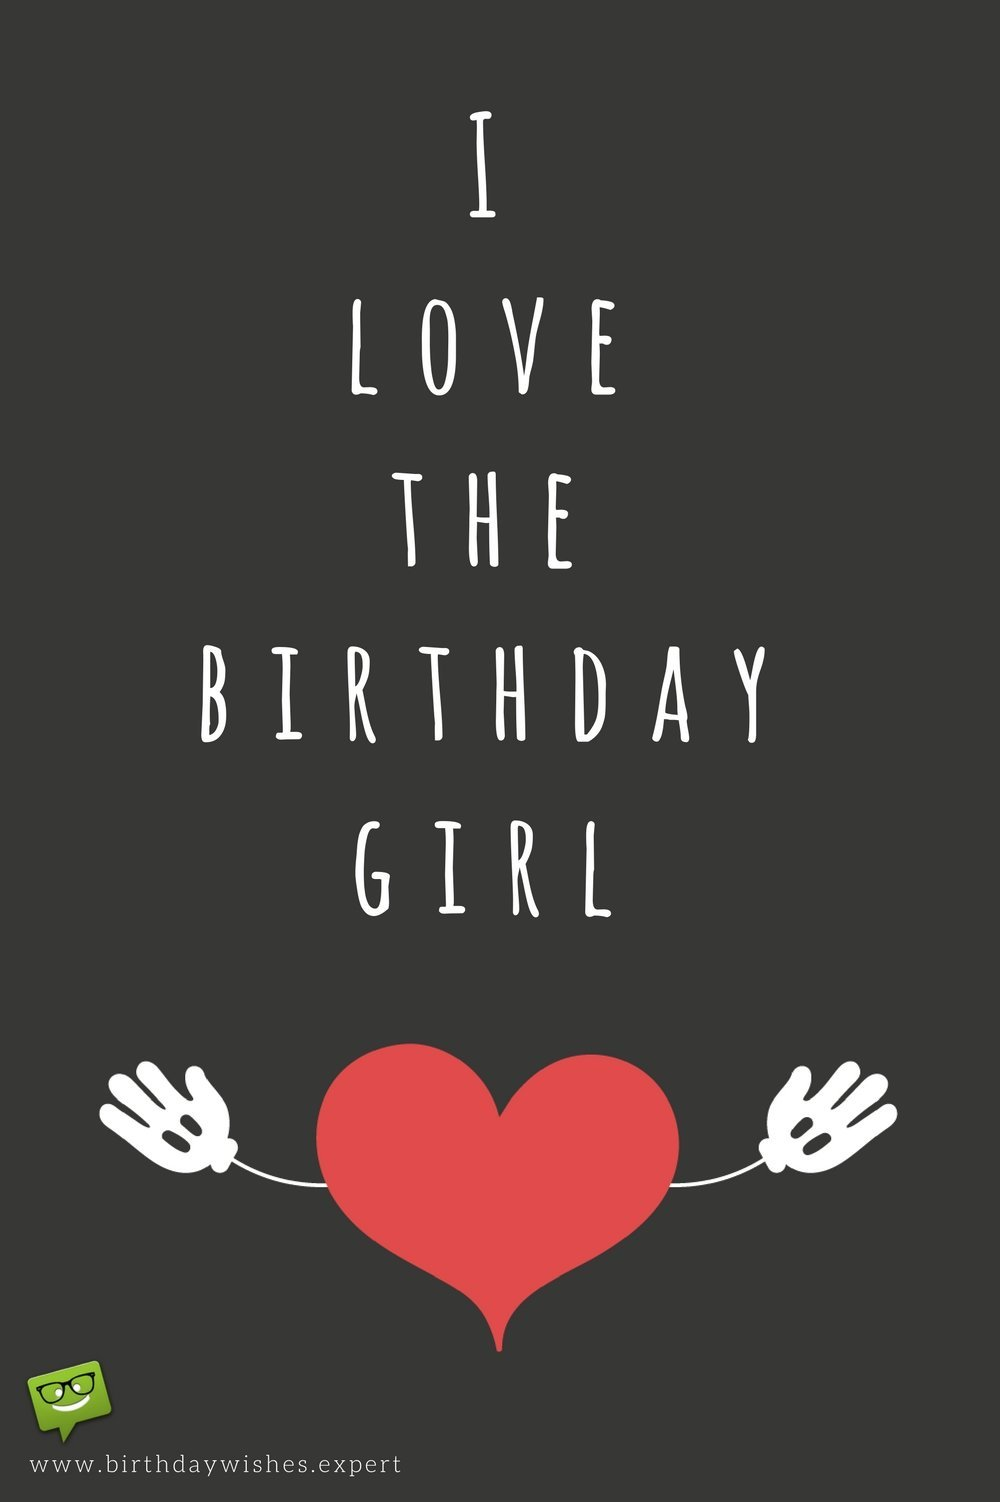 Romantic Birthday Wishes With Gift Of Love And Greeting Card For